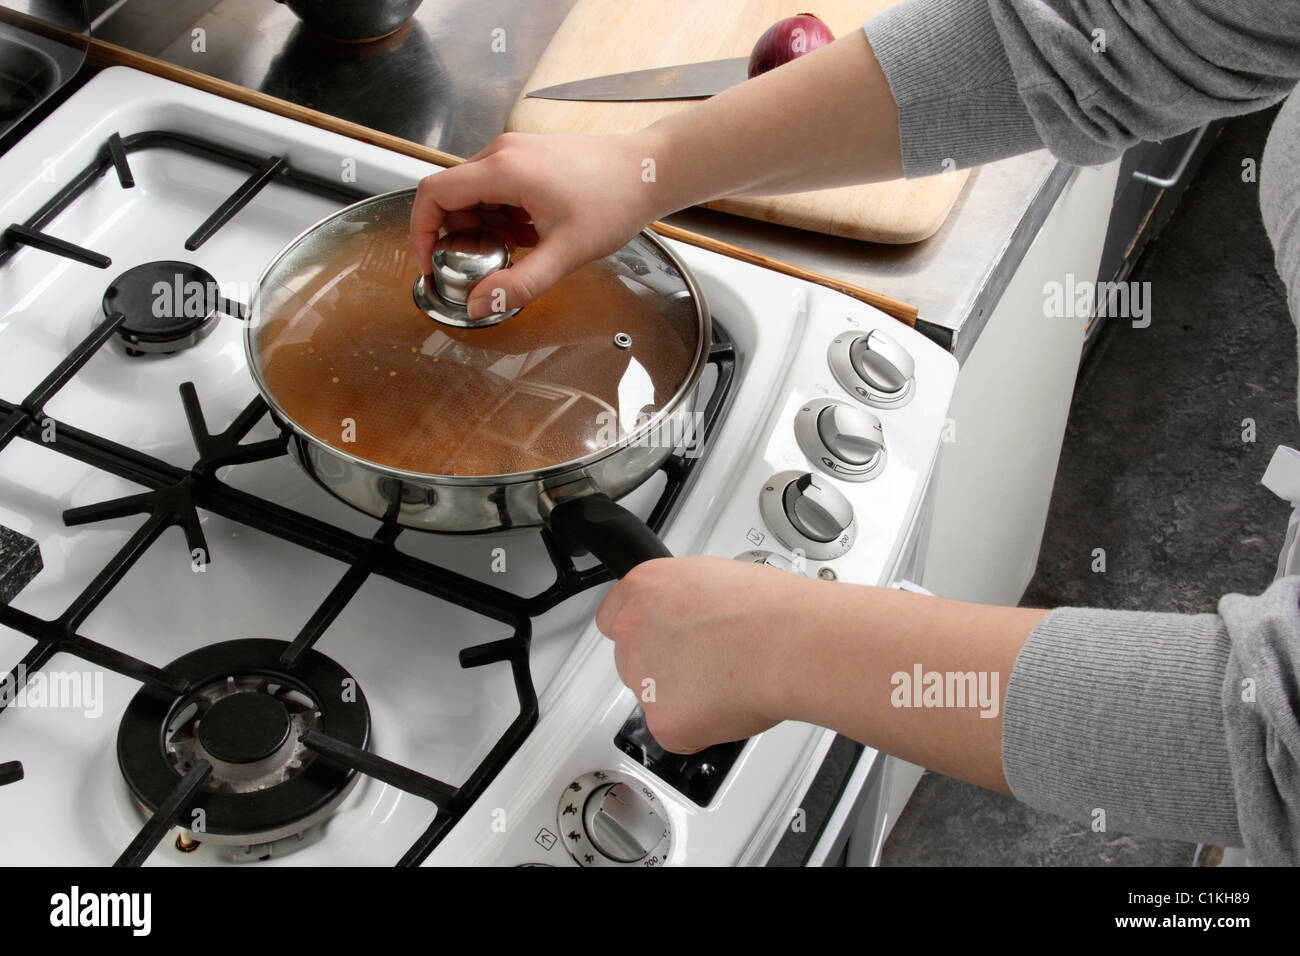 Putting a lid on a saucepan of simmering chicken rogan josh - Stock Image